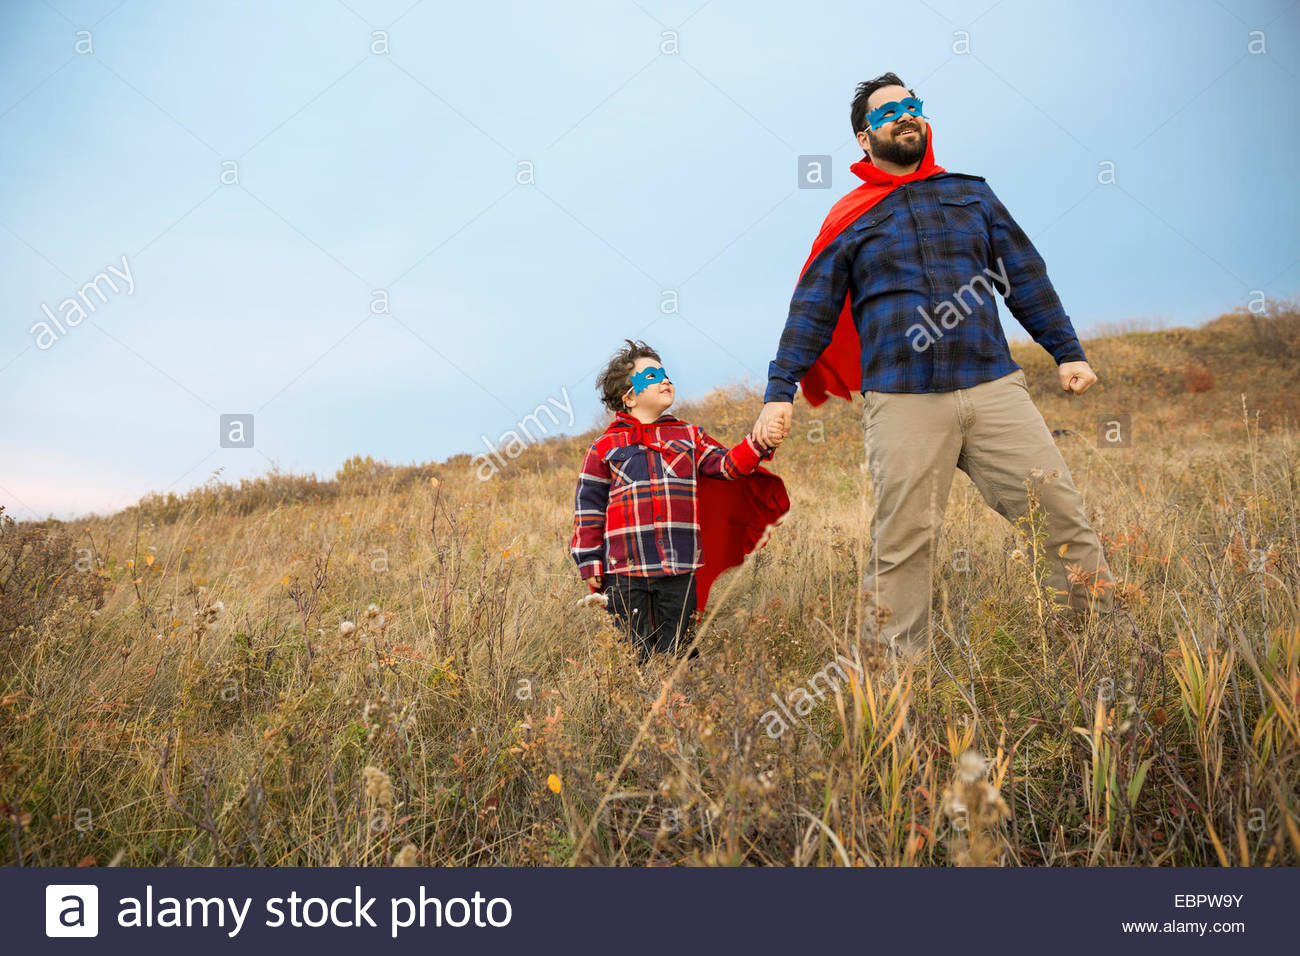 Father and son in superhero capes in field - Stock Image